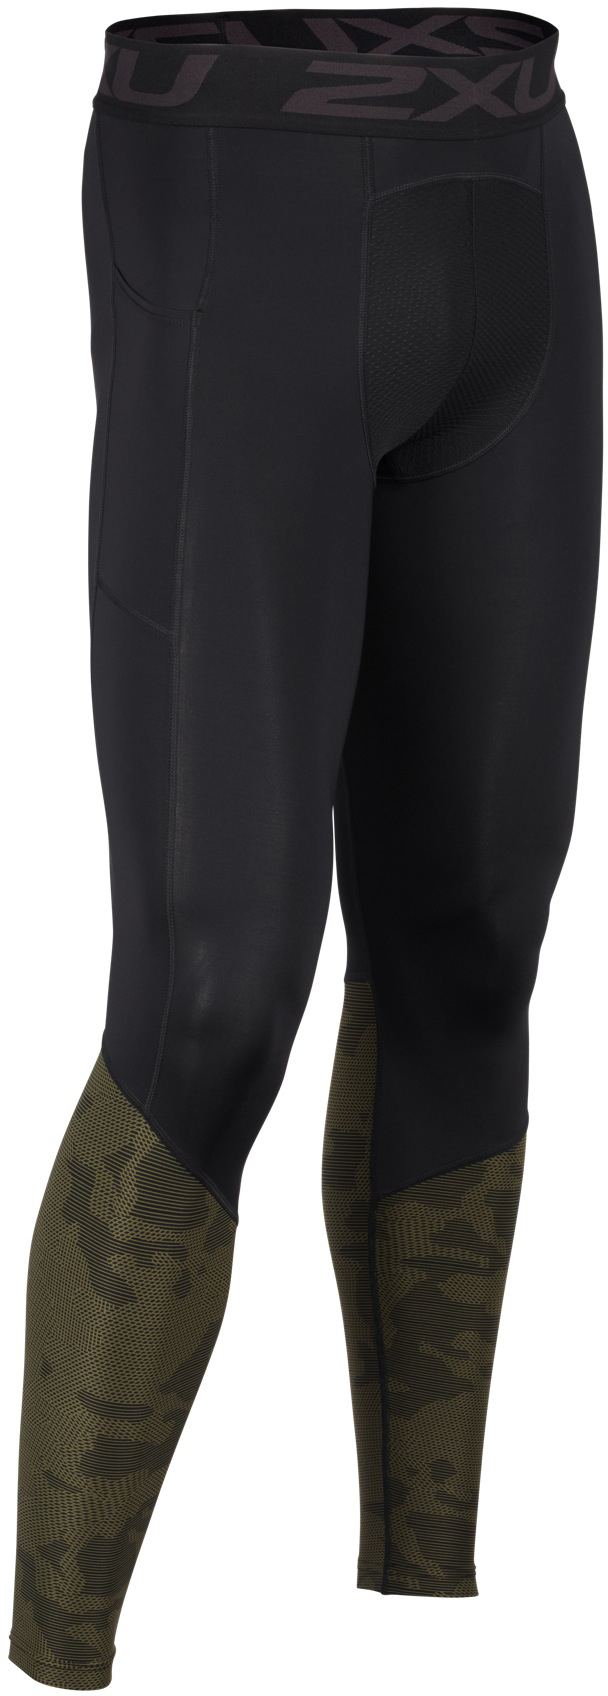 2XU Accelerate Compression Tights with Storage | Compression